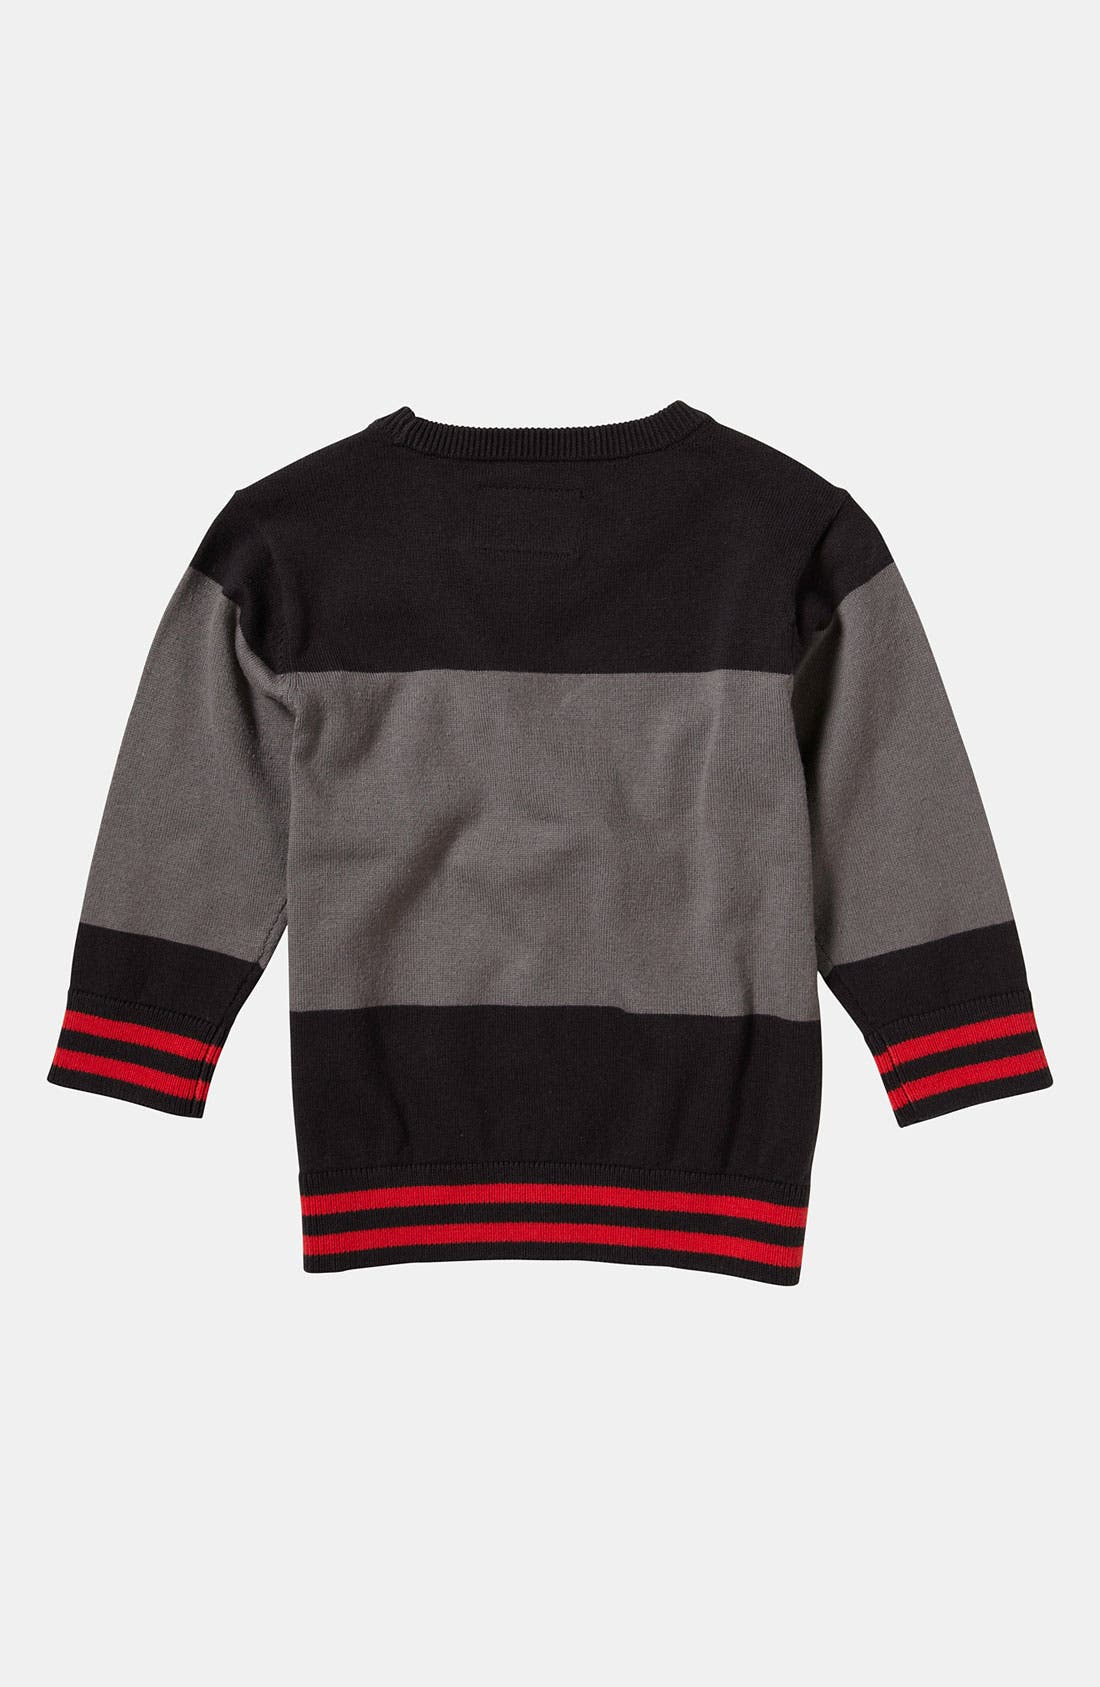 Alternate Image 2  - Quiksilver 'Wild Card' Sweater (Infant)